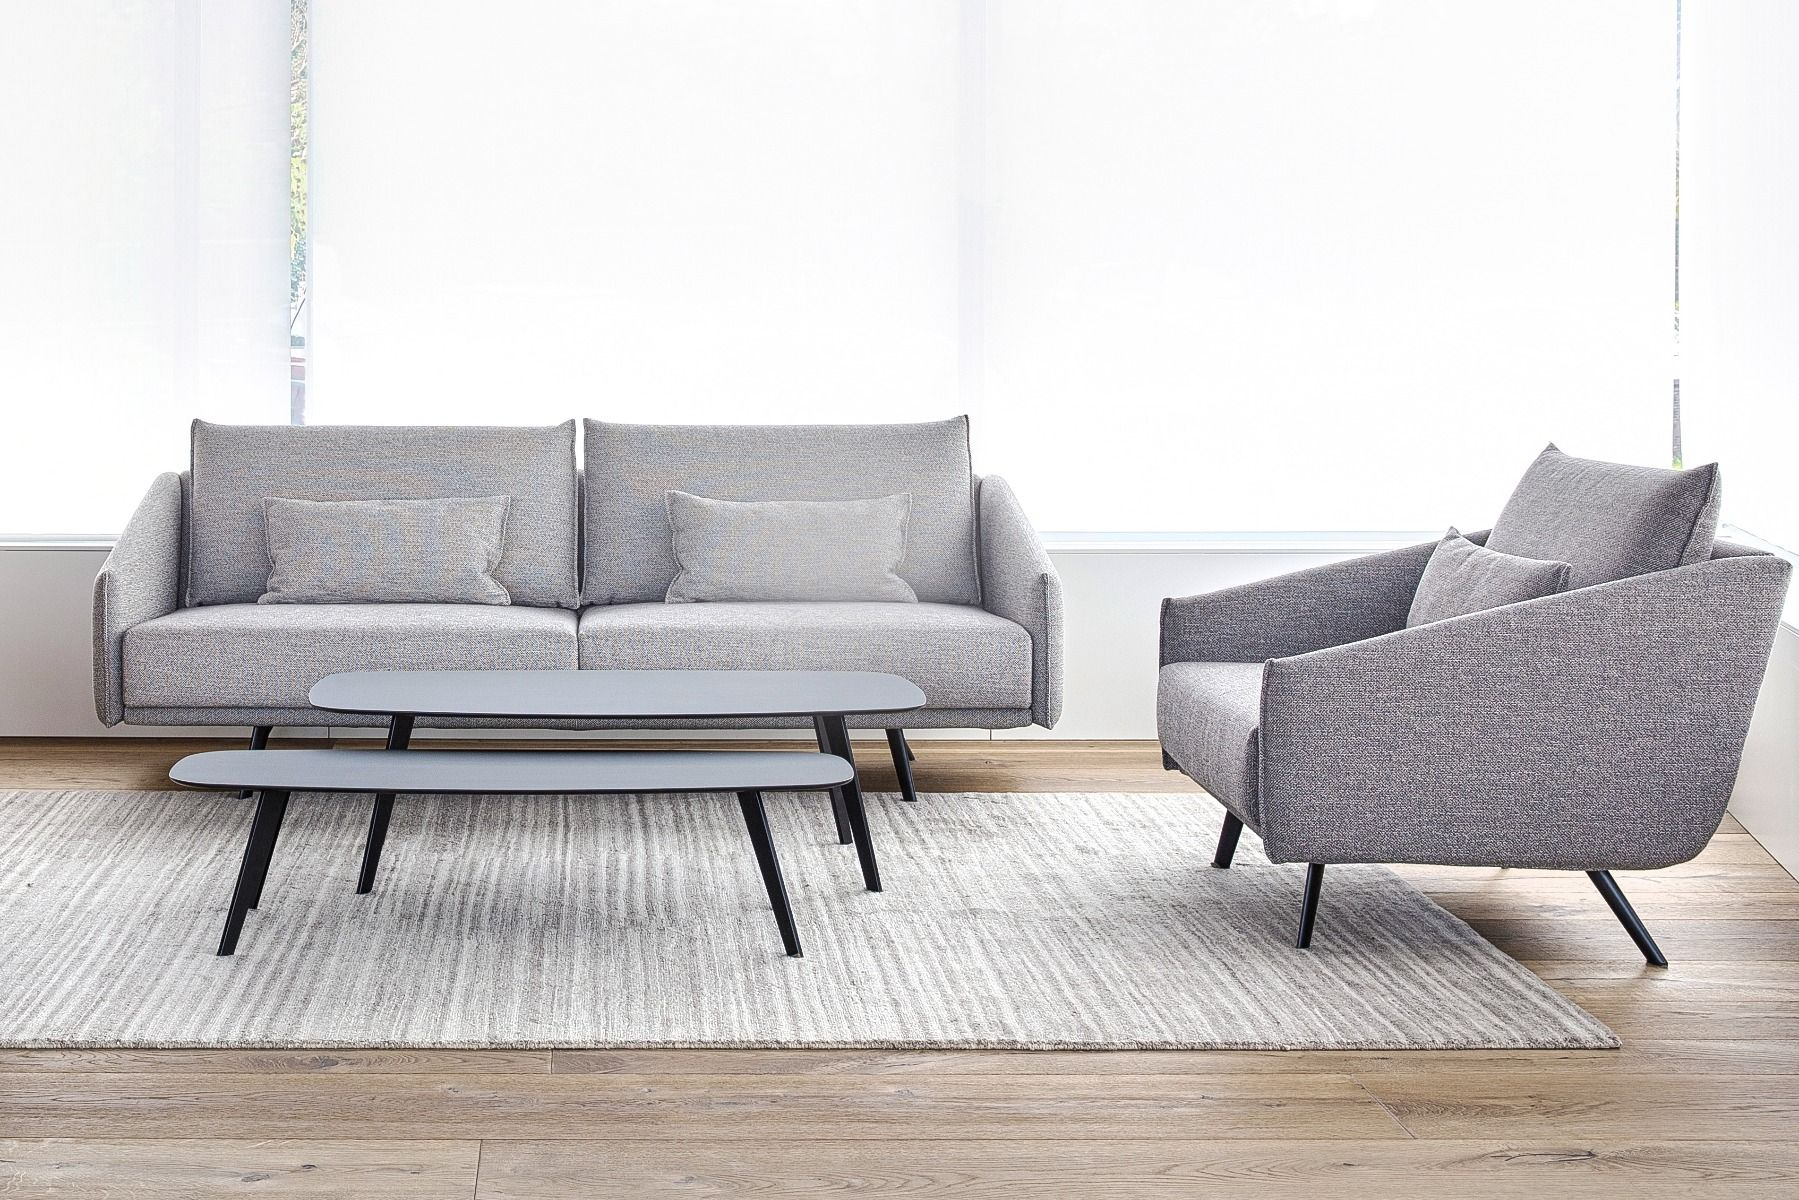 Stua Solapa Tables-Fenix in living room with costura sofa and arm chair